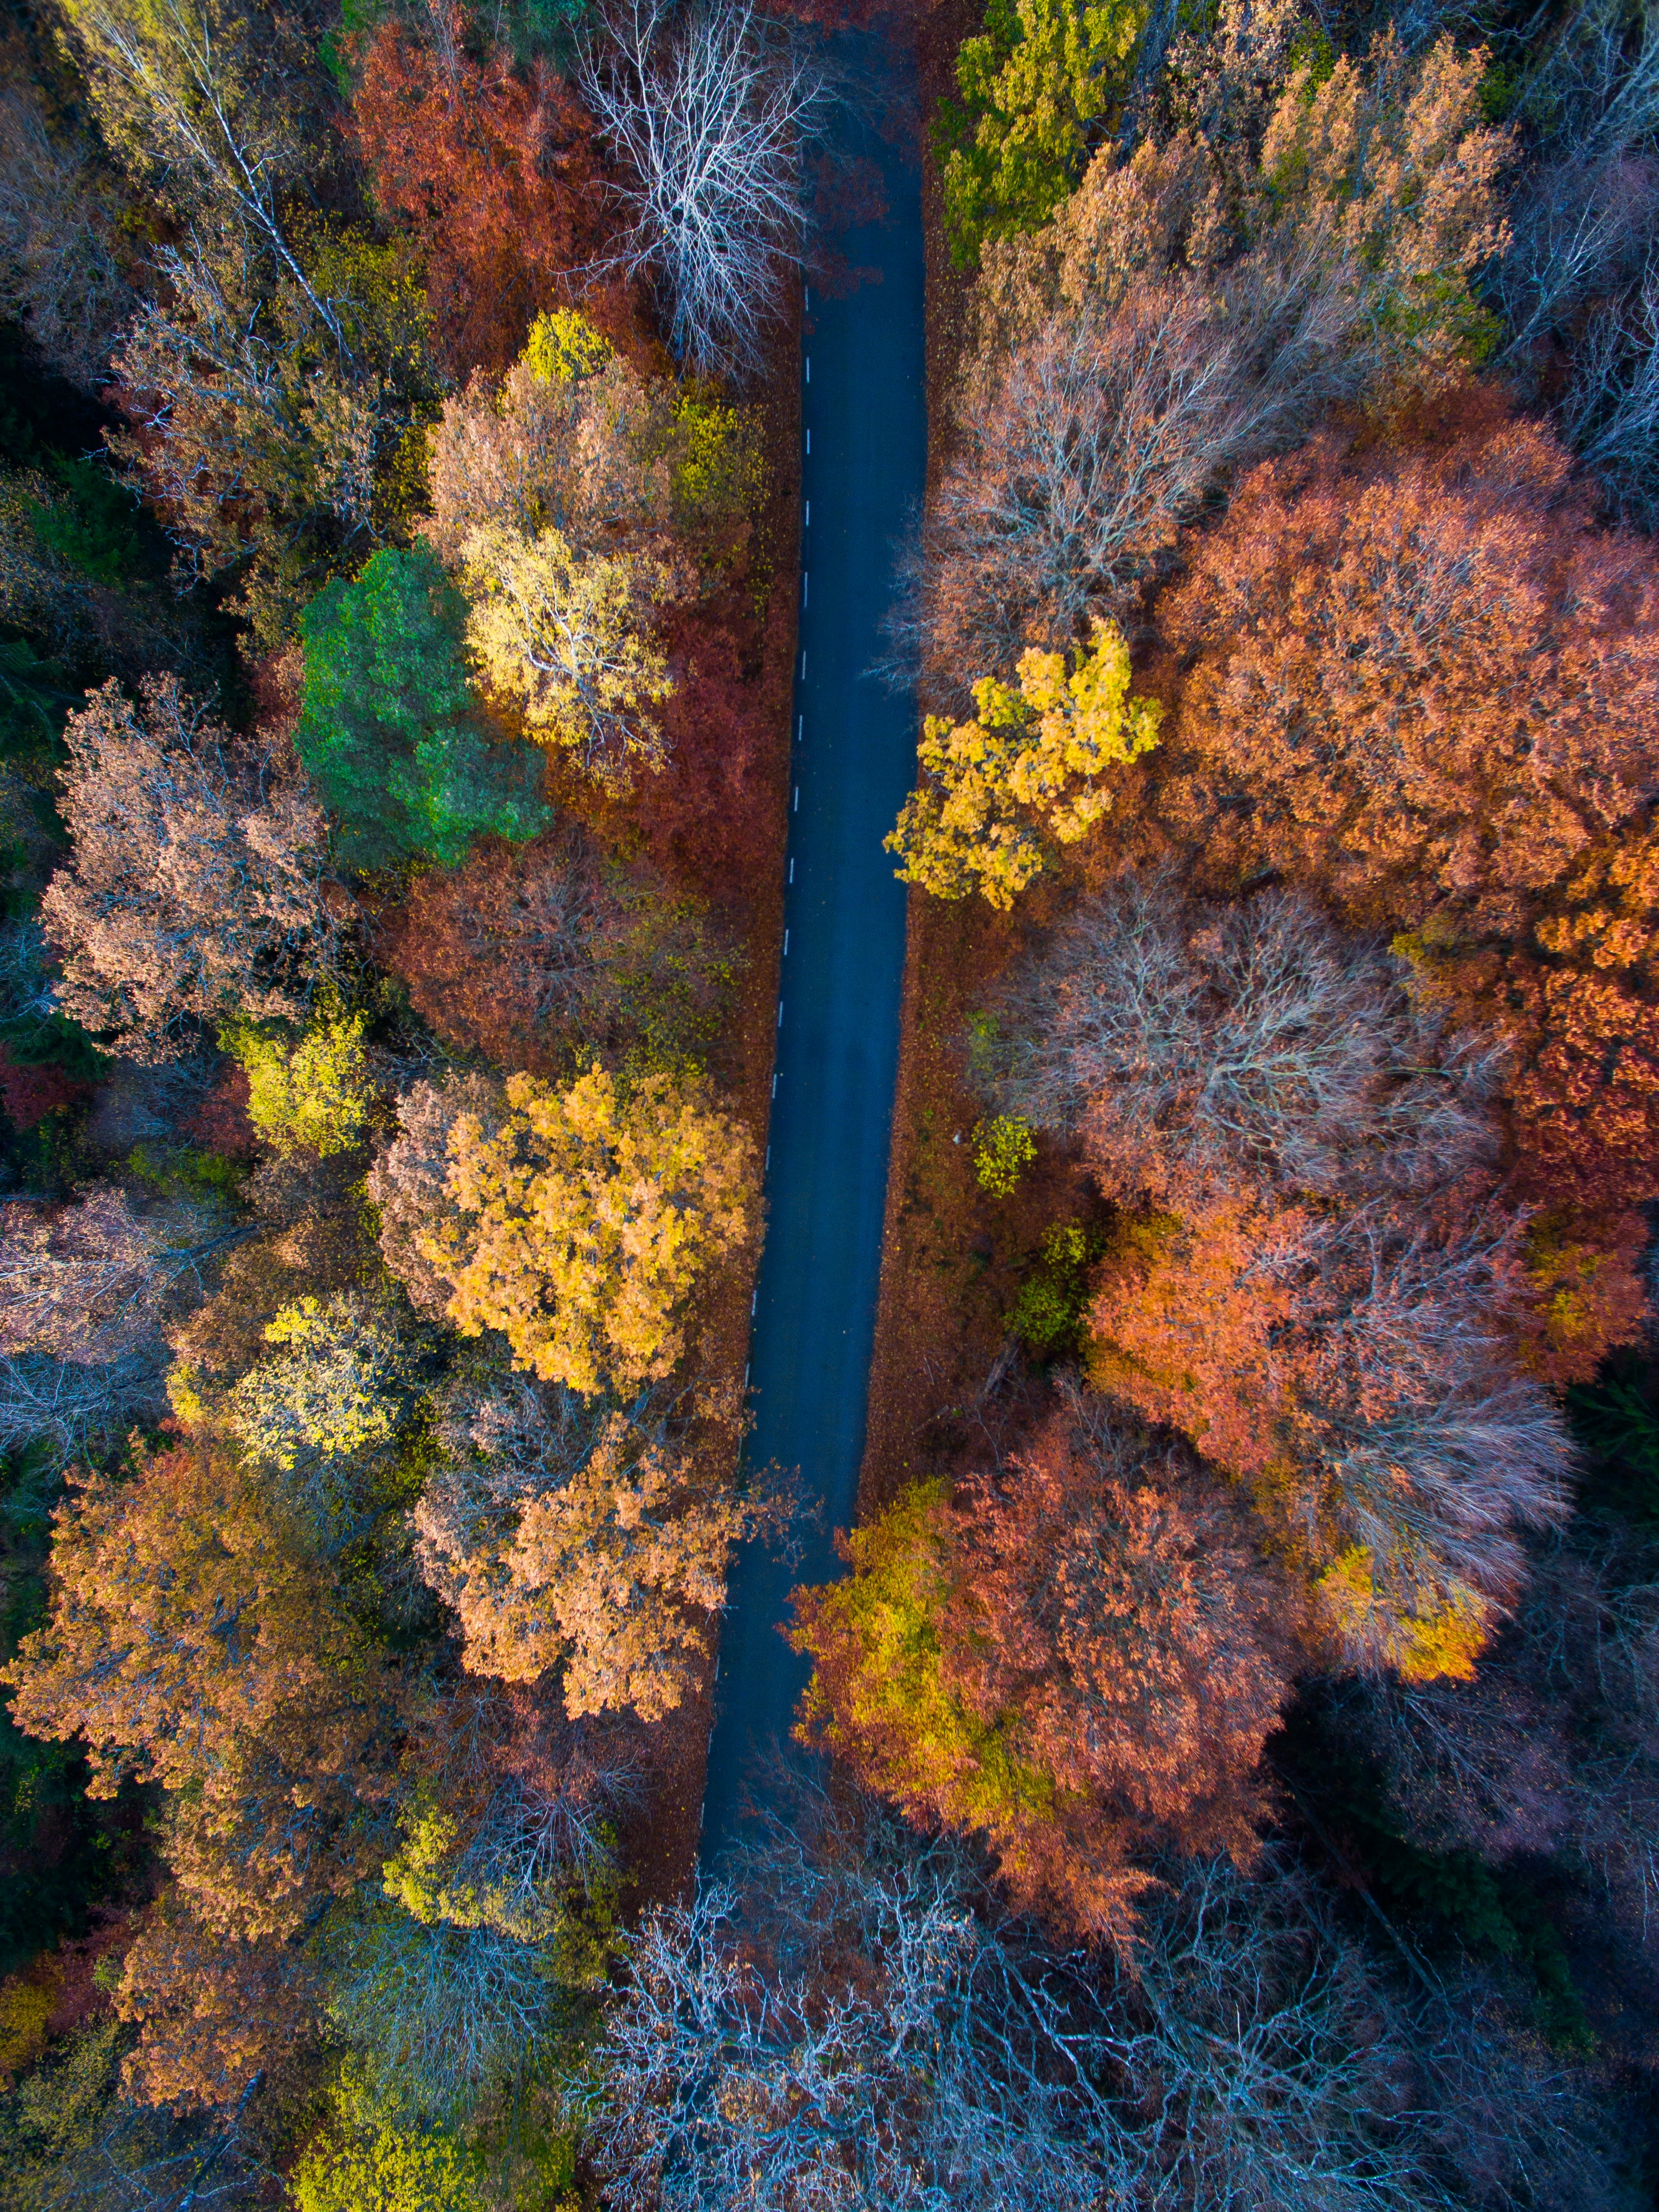 A drone shot of a road between rows of autumn trees